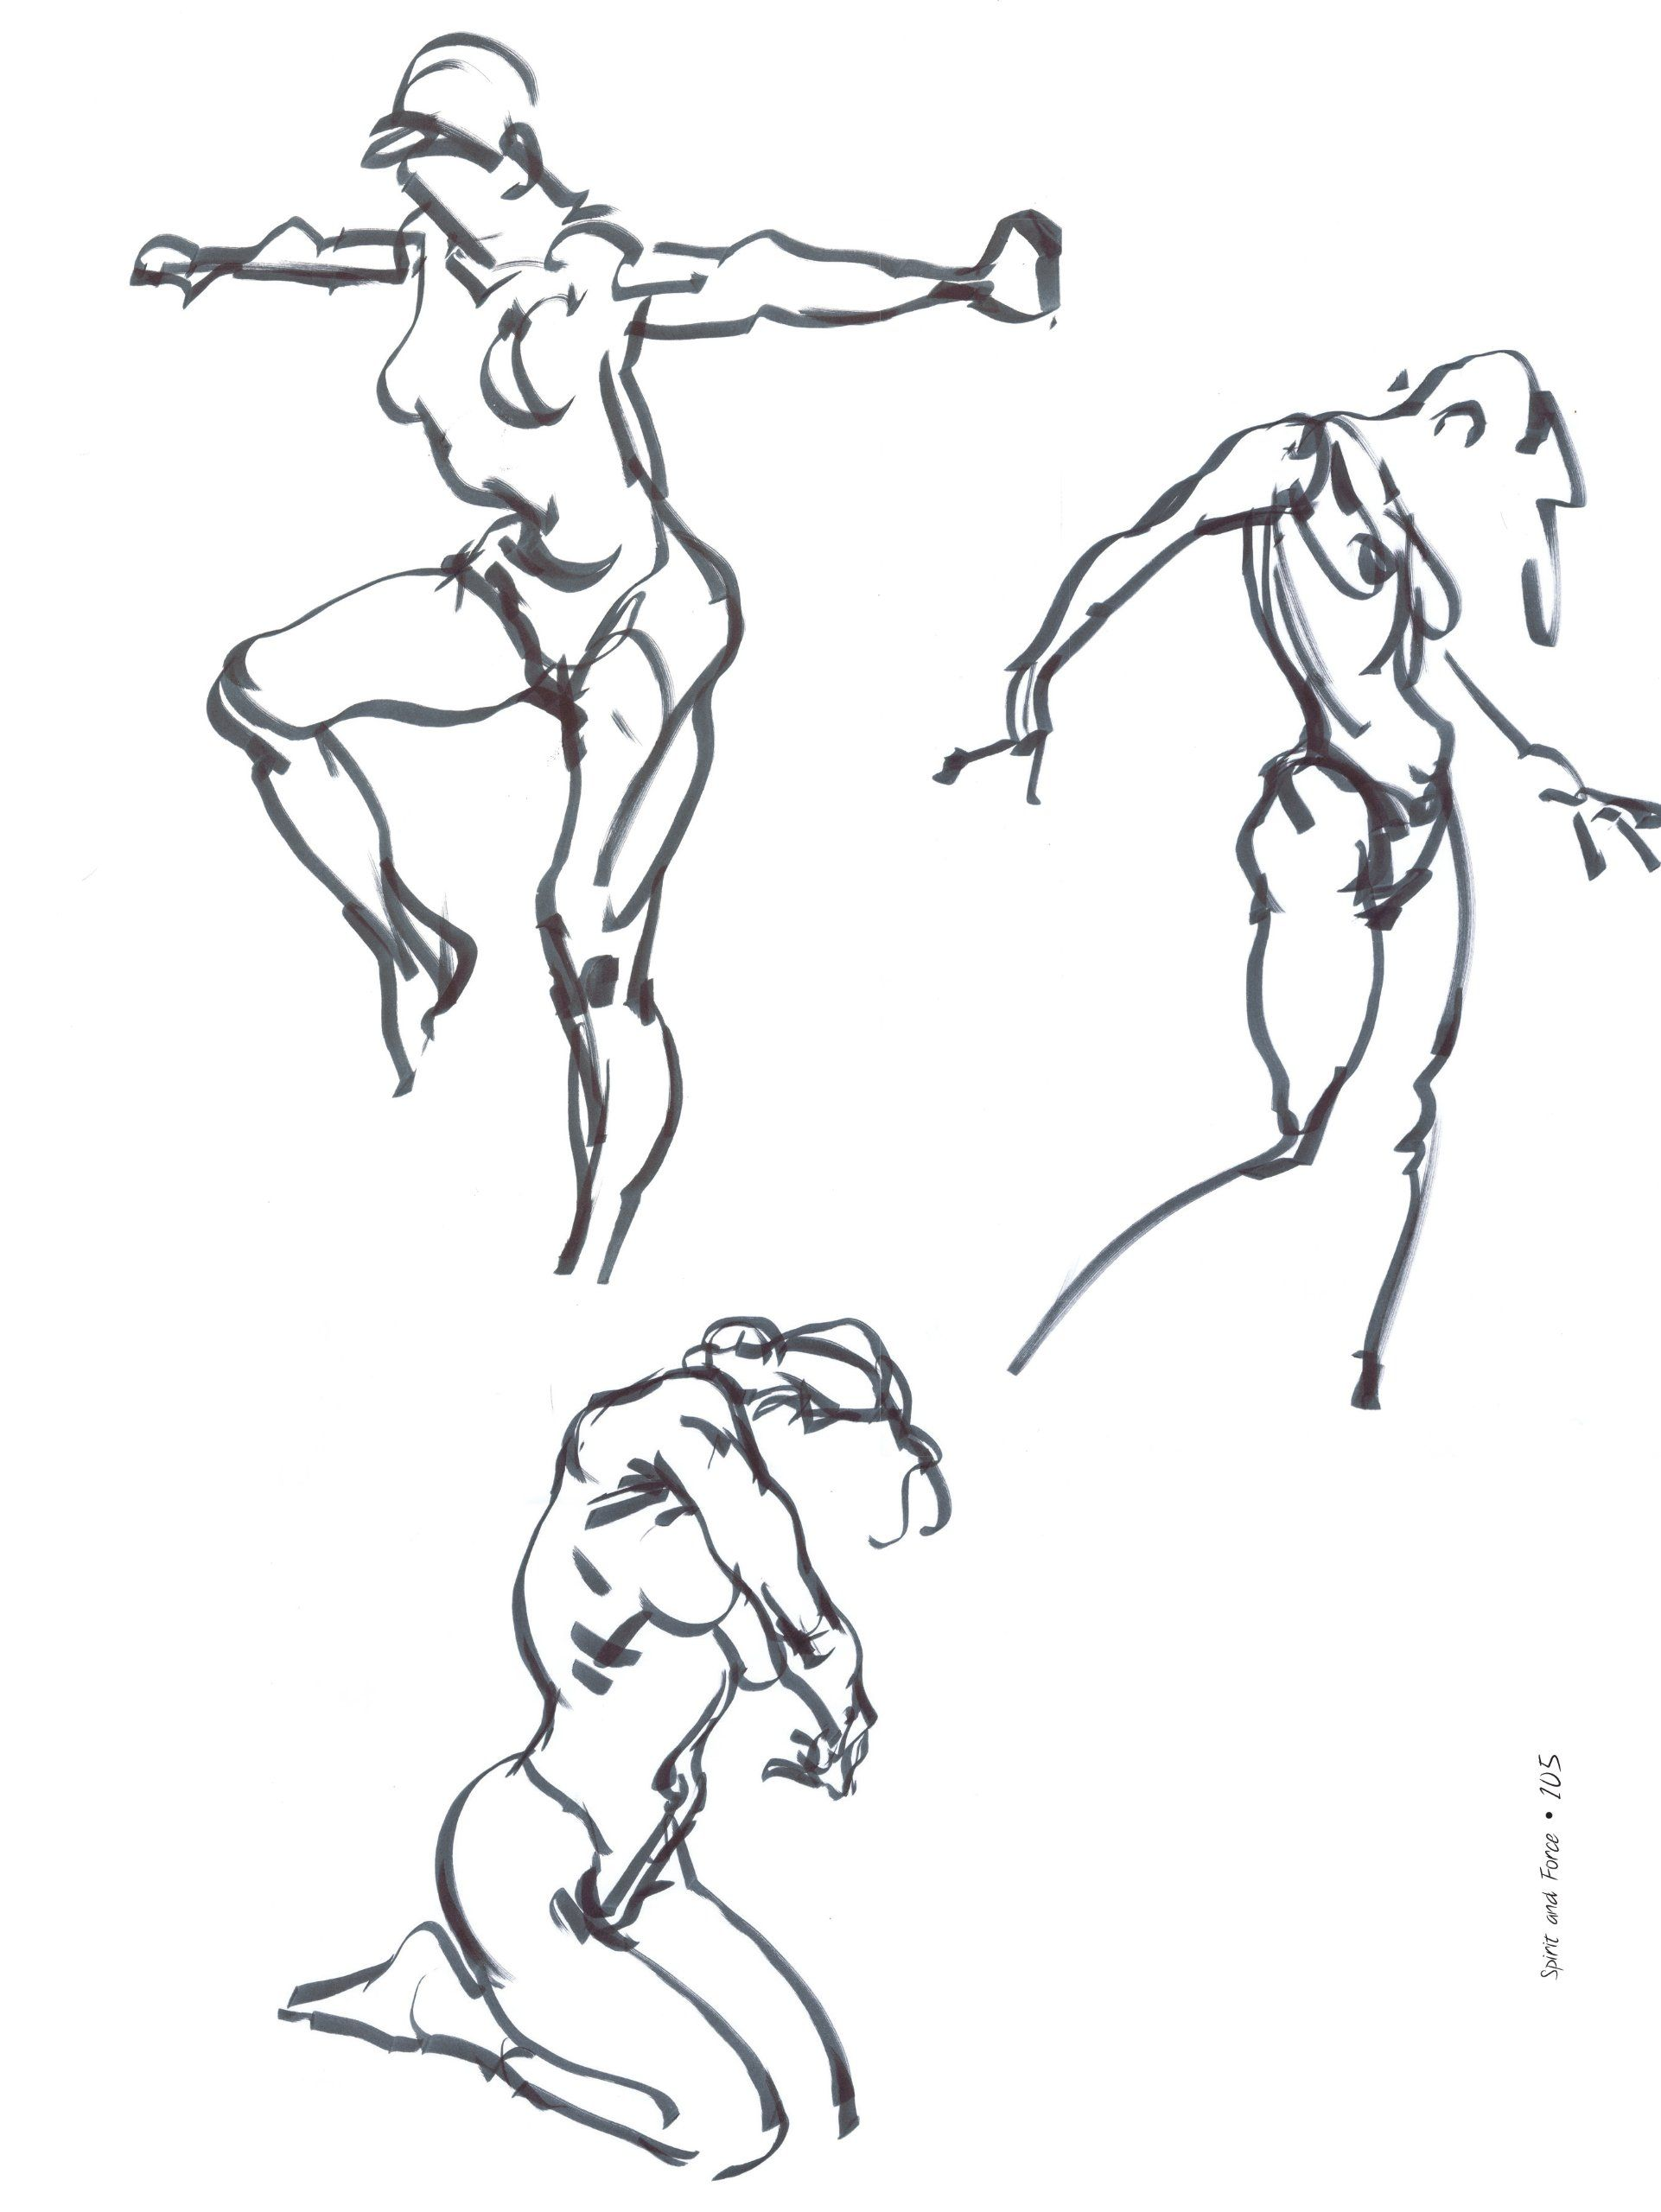 Spirit And Force In Figure Drawing: Karl Gnass, Michael